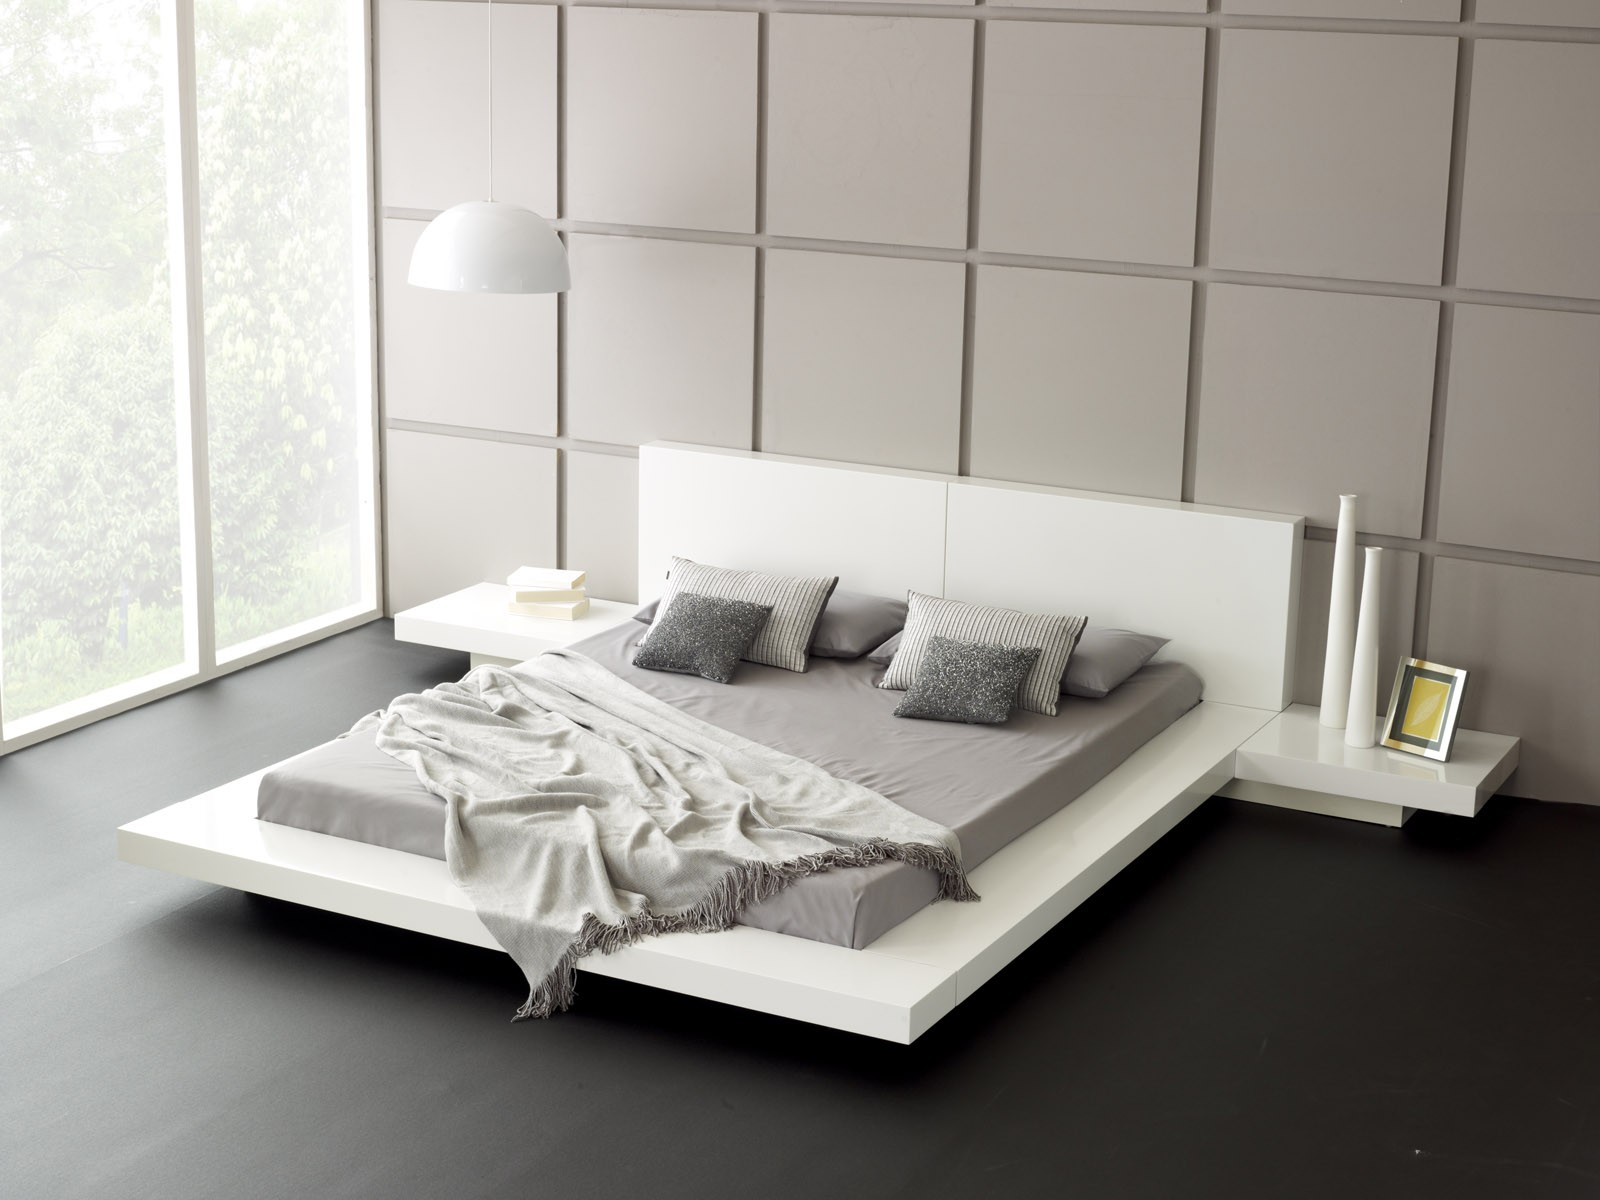 white wooden bed frames low profile queen bed square panel wall - Low Queen Bed Frame